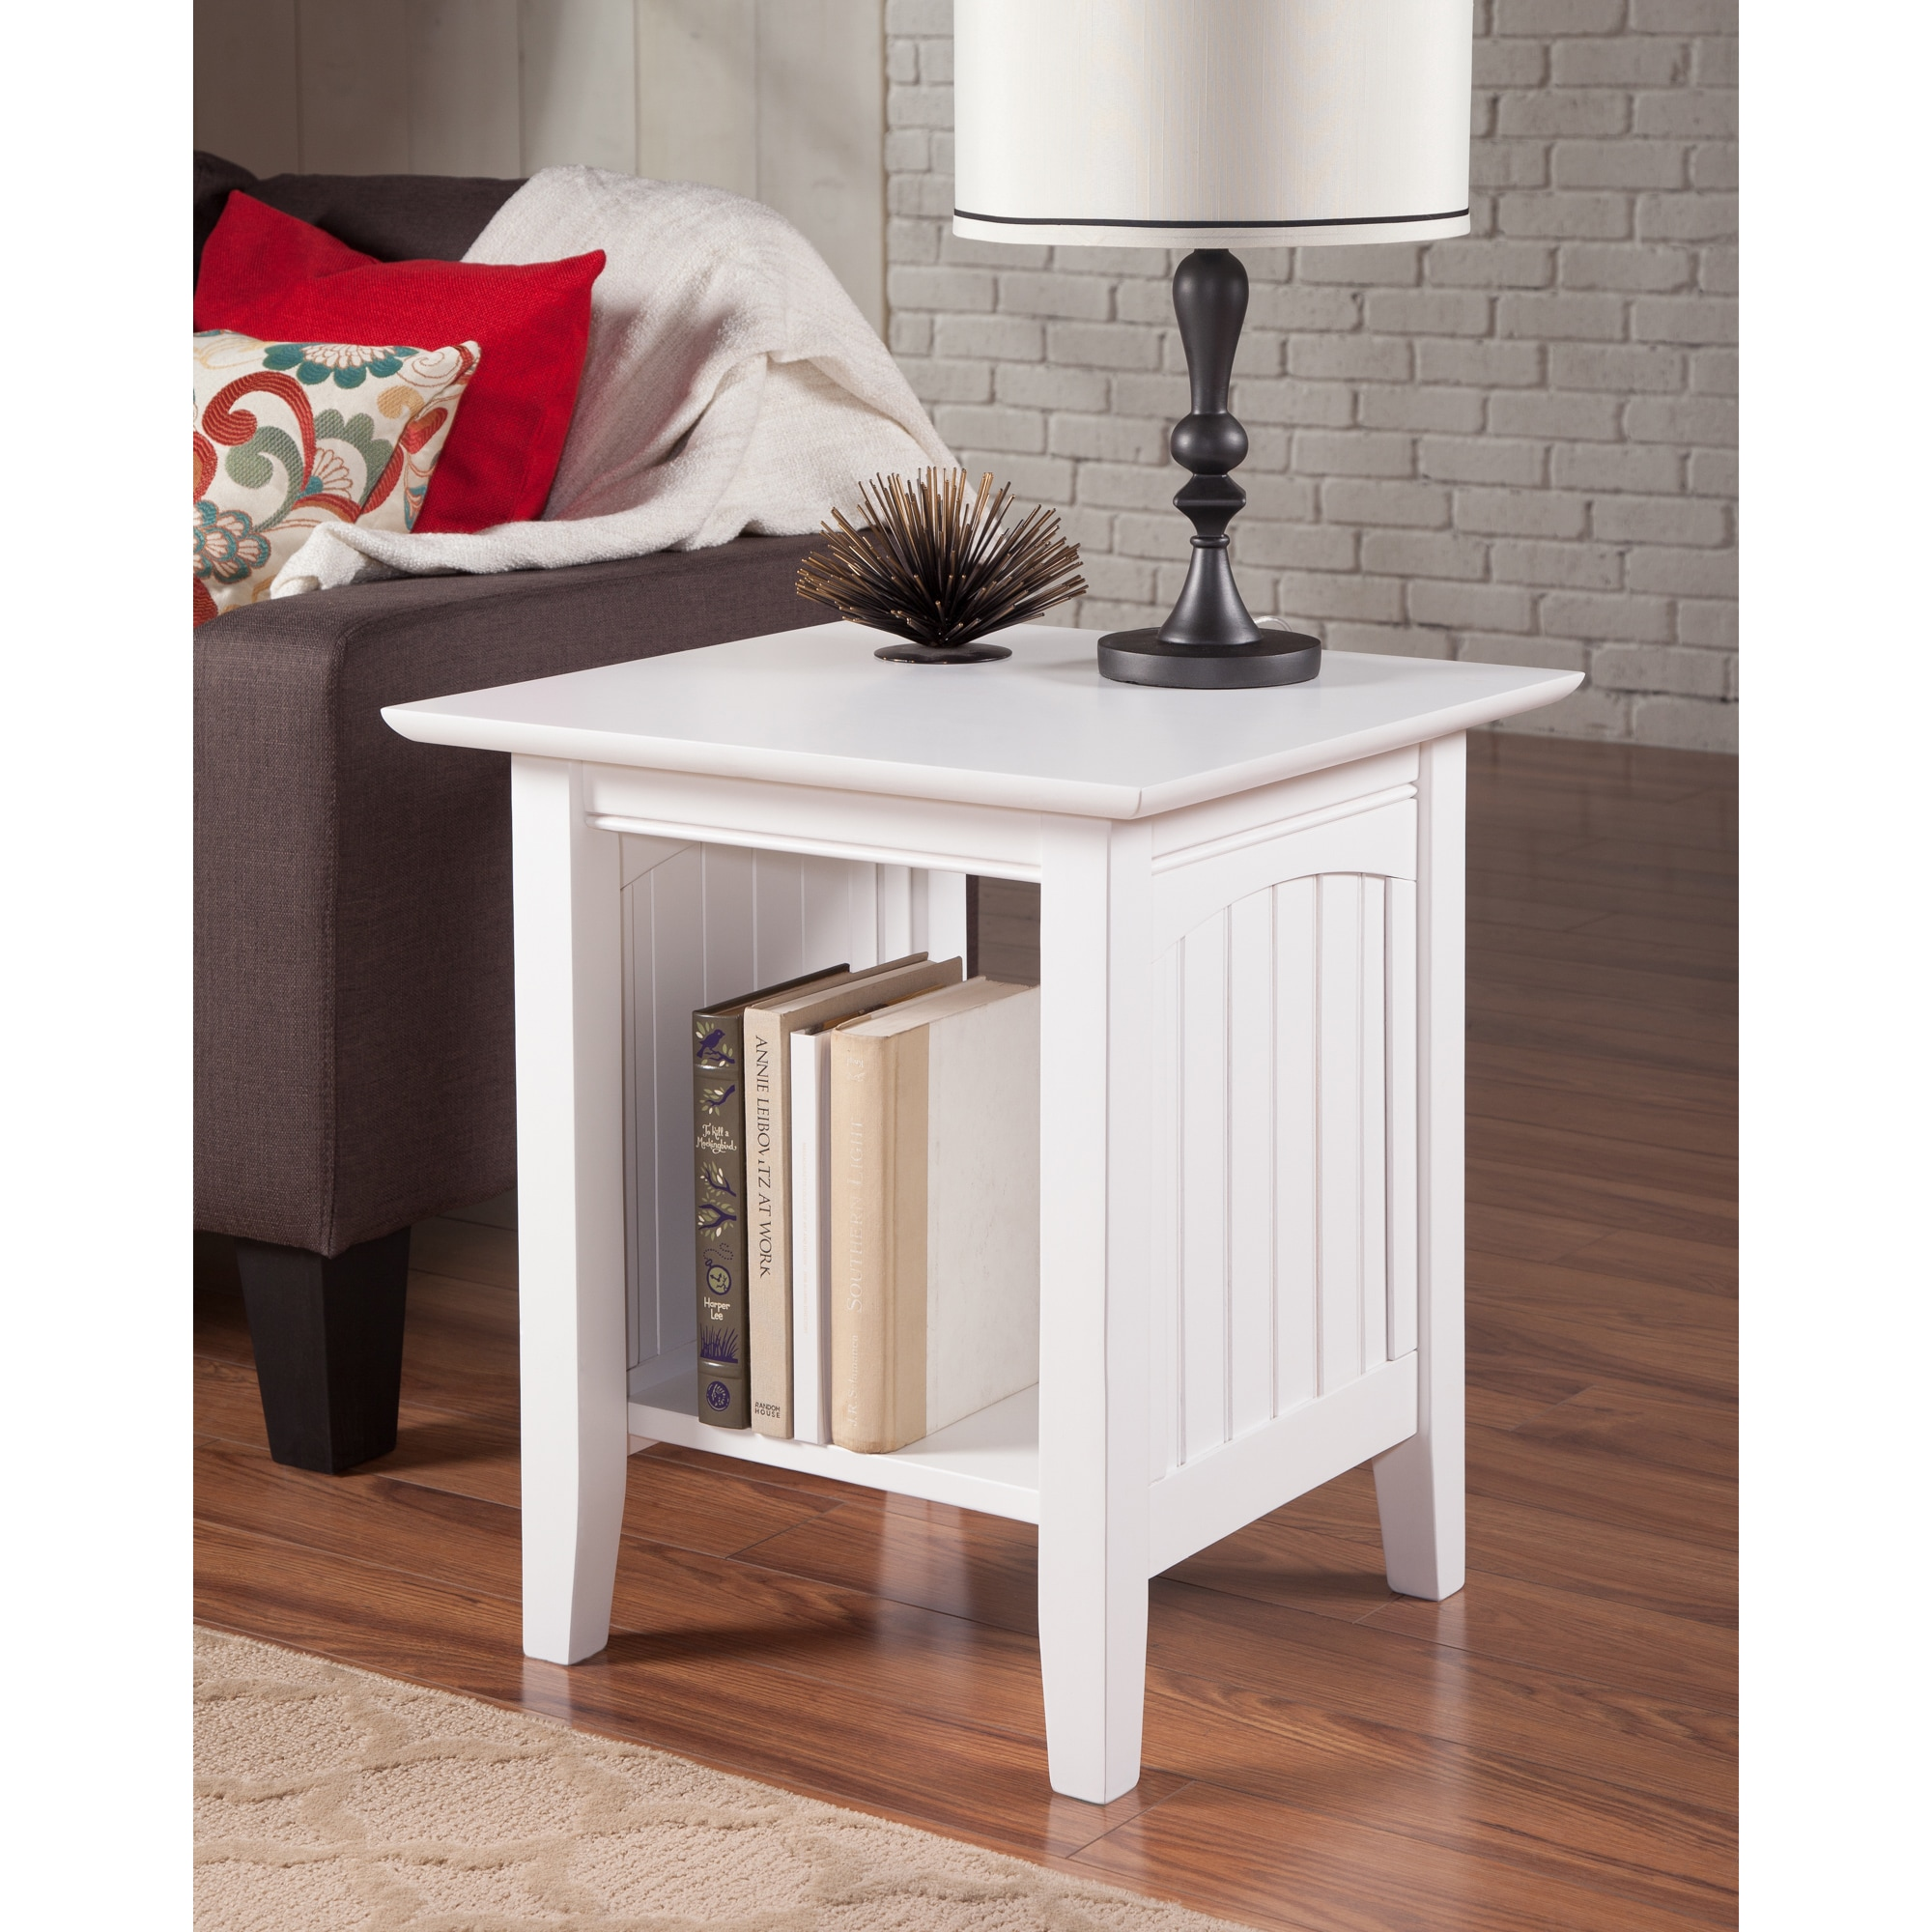 end piece beachcrest coffee tables ruthwynn furniture reviews pdx wayfair white set home table